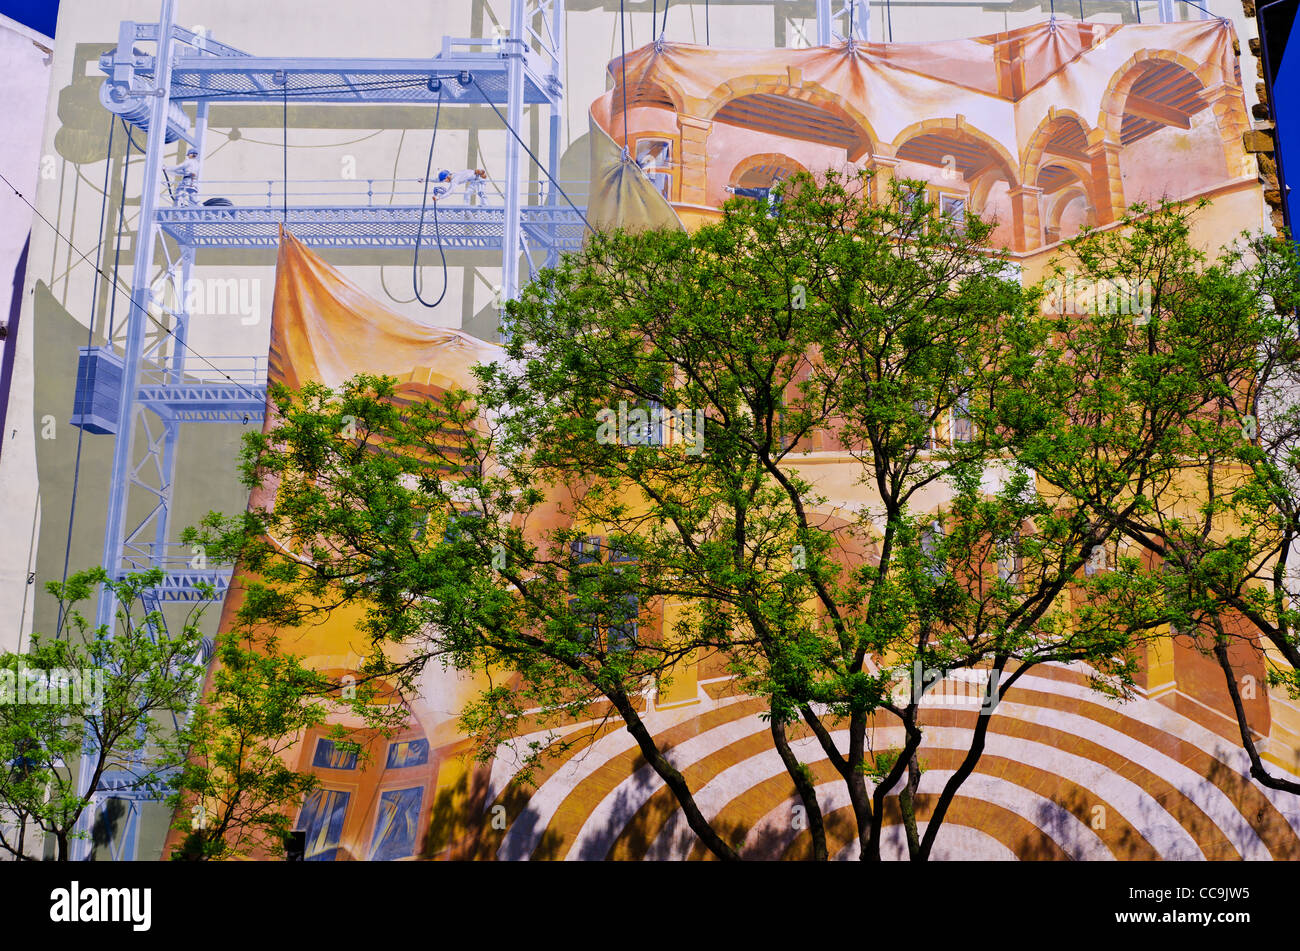 Mural and tree, Lyon, France (UNESCO World Heritage Site) Stock Photo